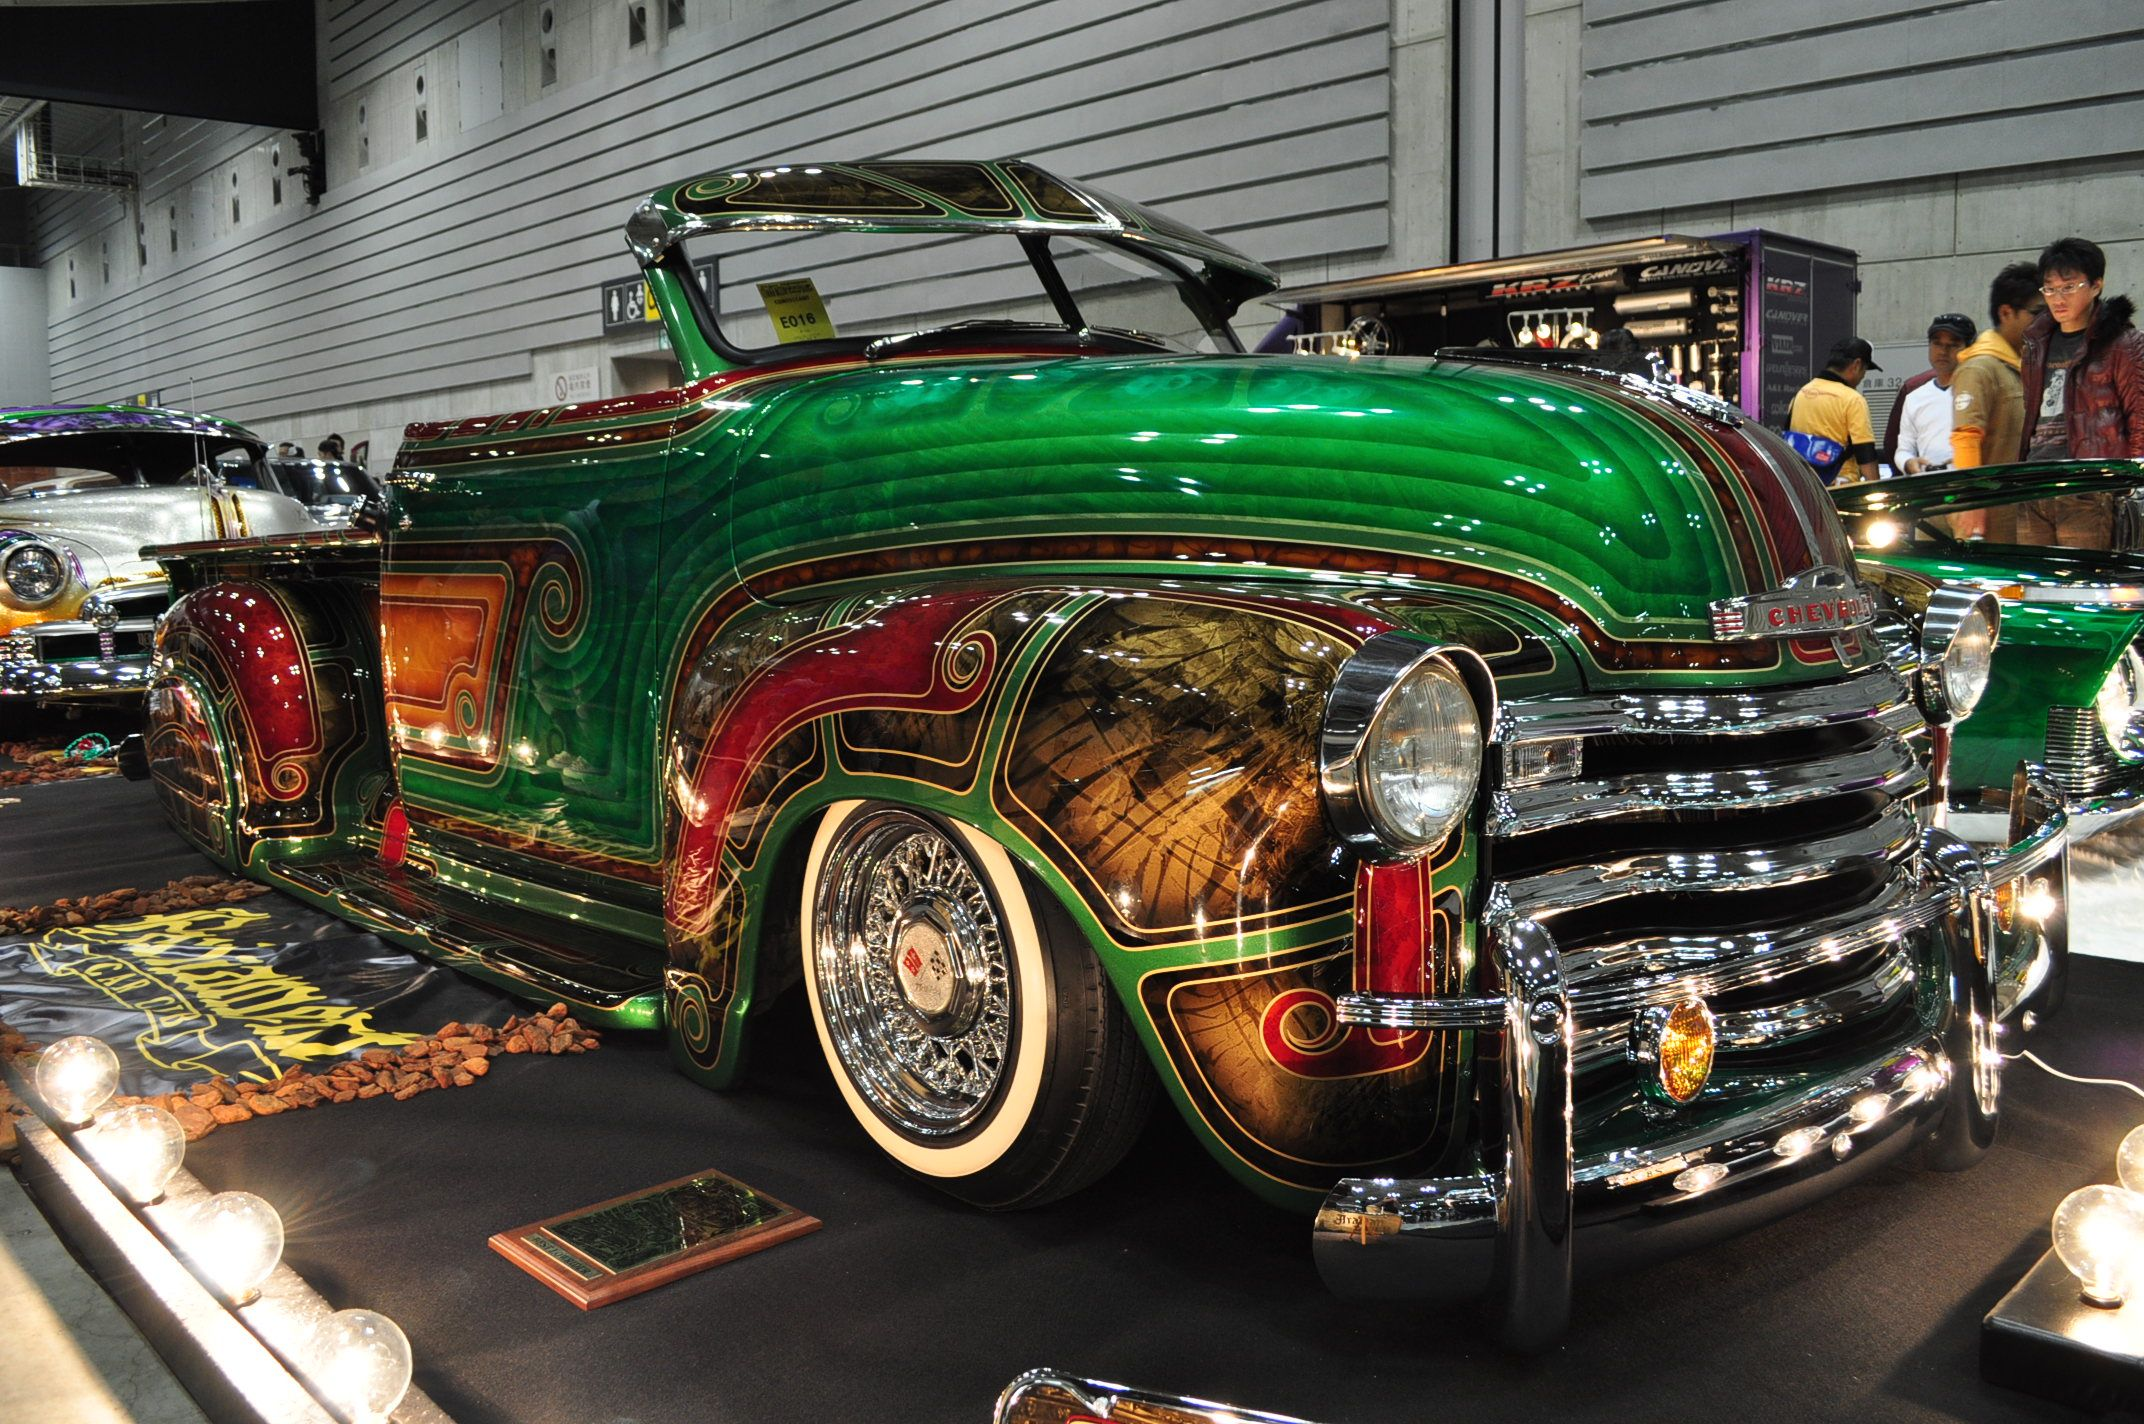 Chevy in japan with intricate paint job theyve embraced